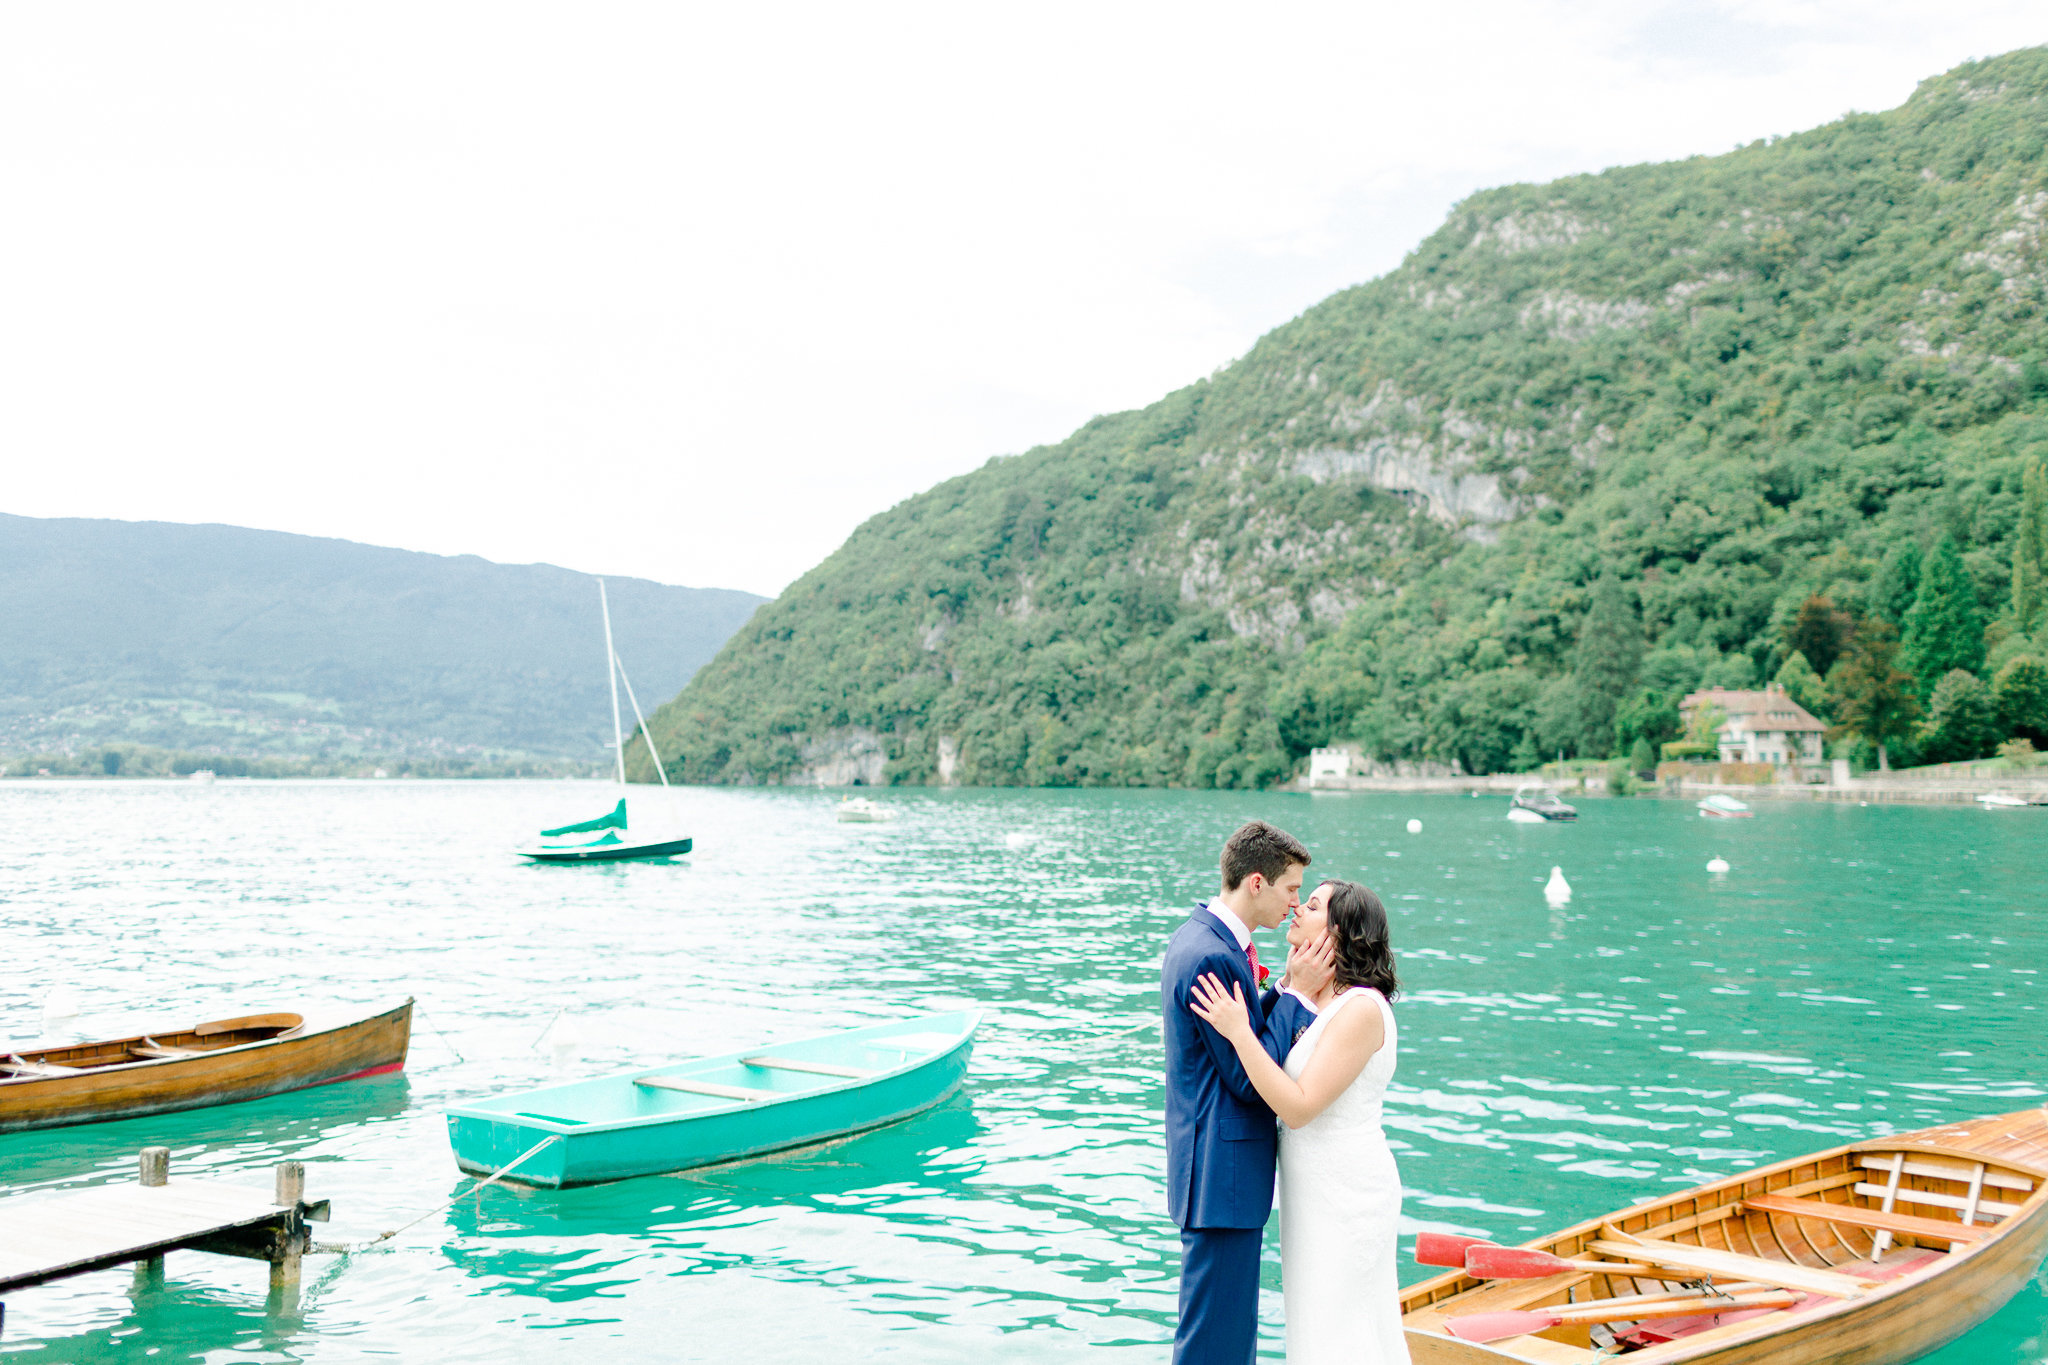 photographe-mariage-talloires-france-lisa-renault-photographie-wedding-destination-photographer-57